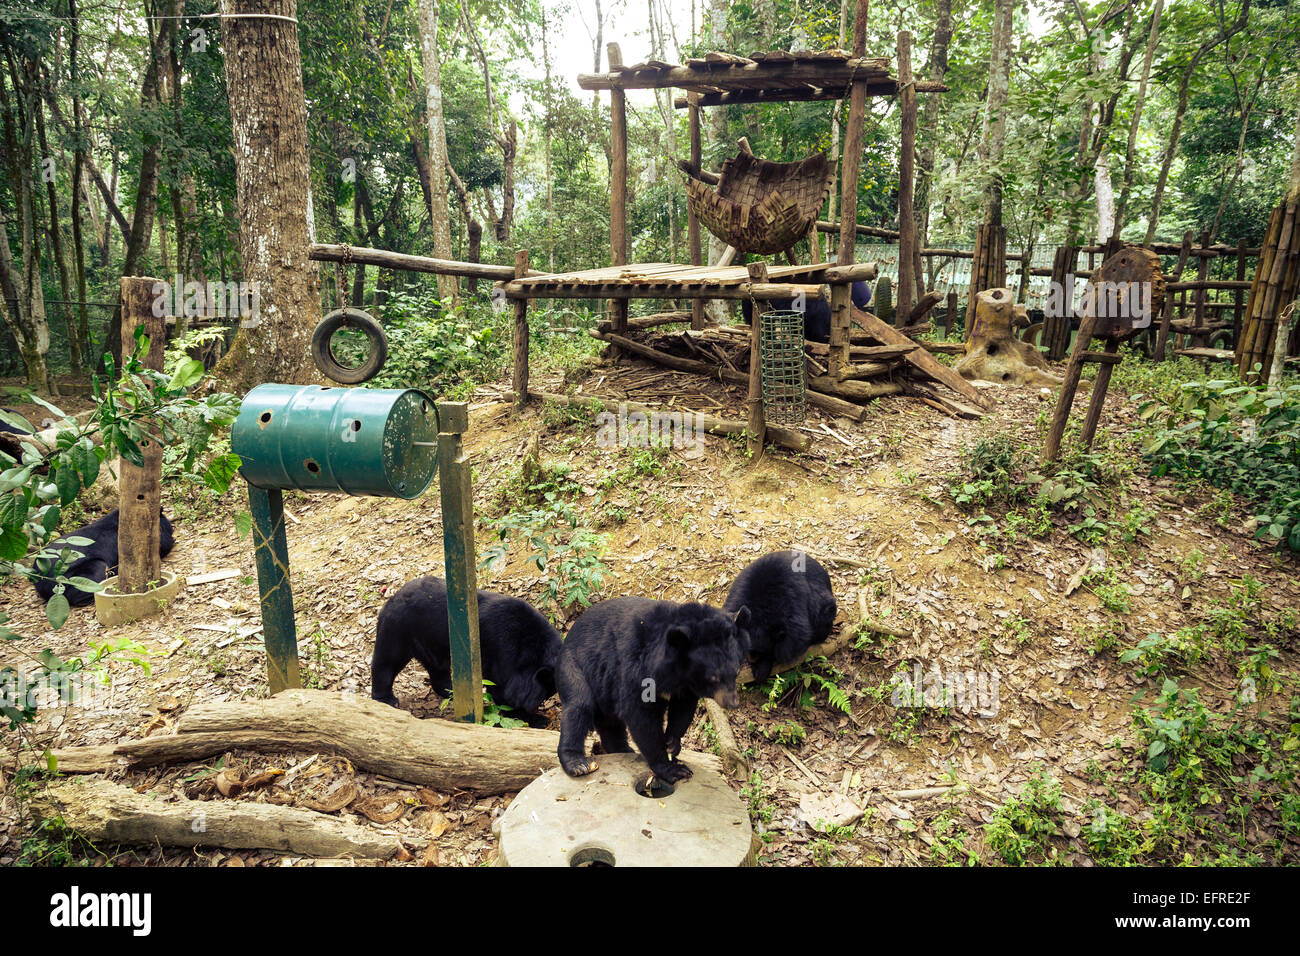 Moon bears at Tat Kuang Si Bear Rescue Centre, Luang Prabang, Laos. - Stock Image